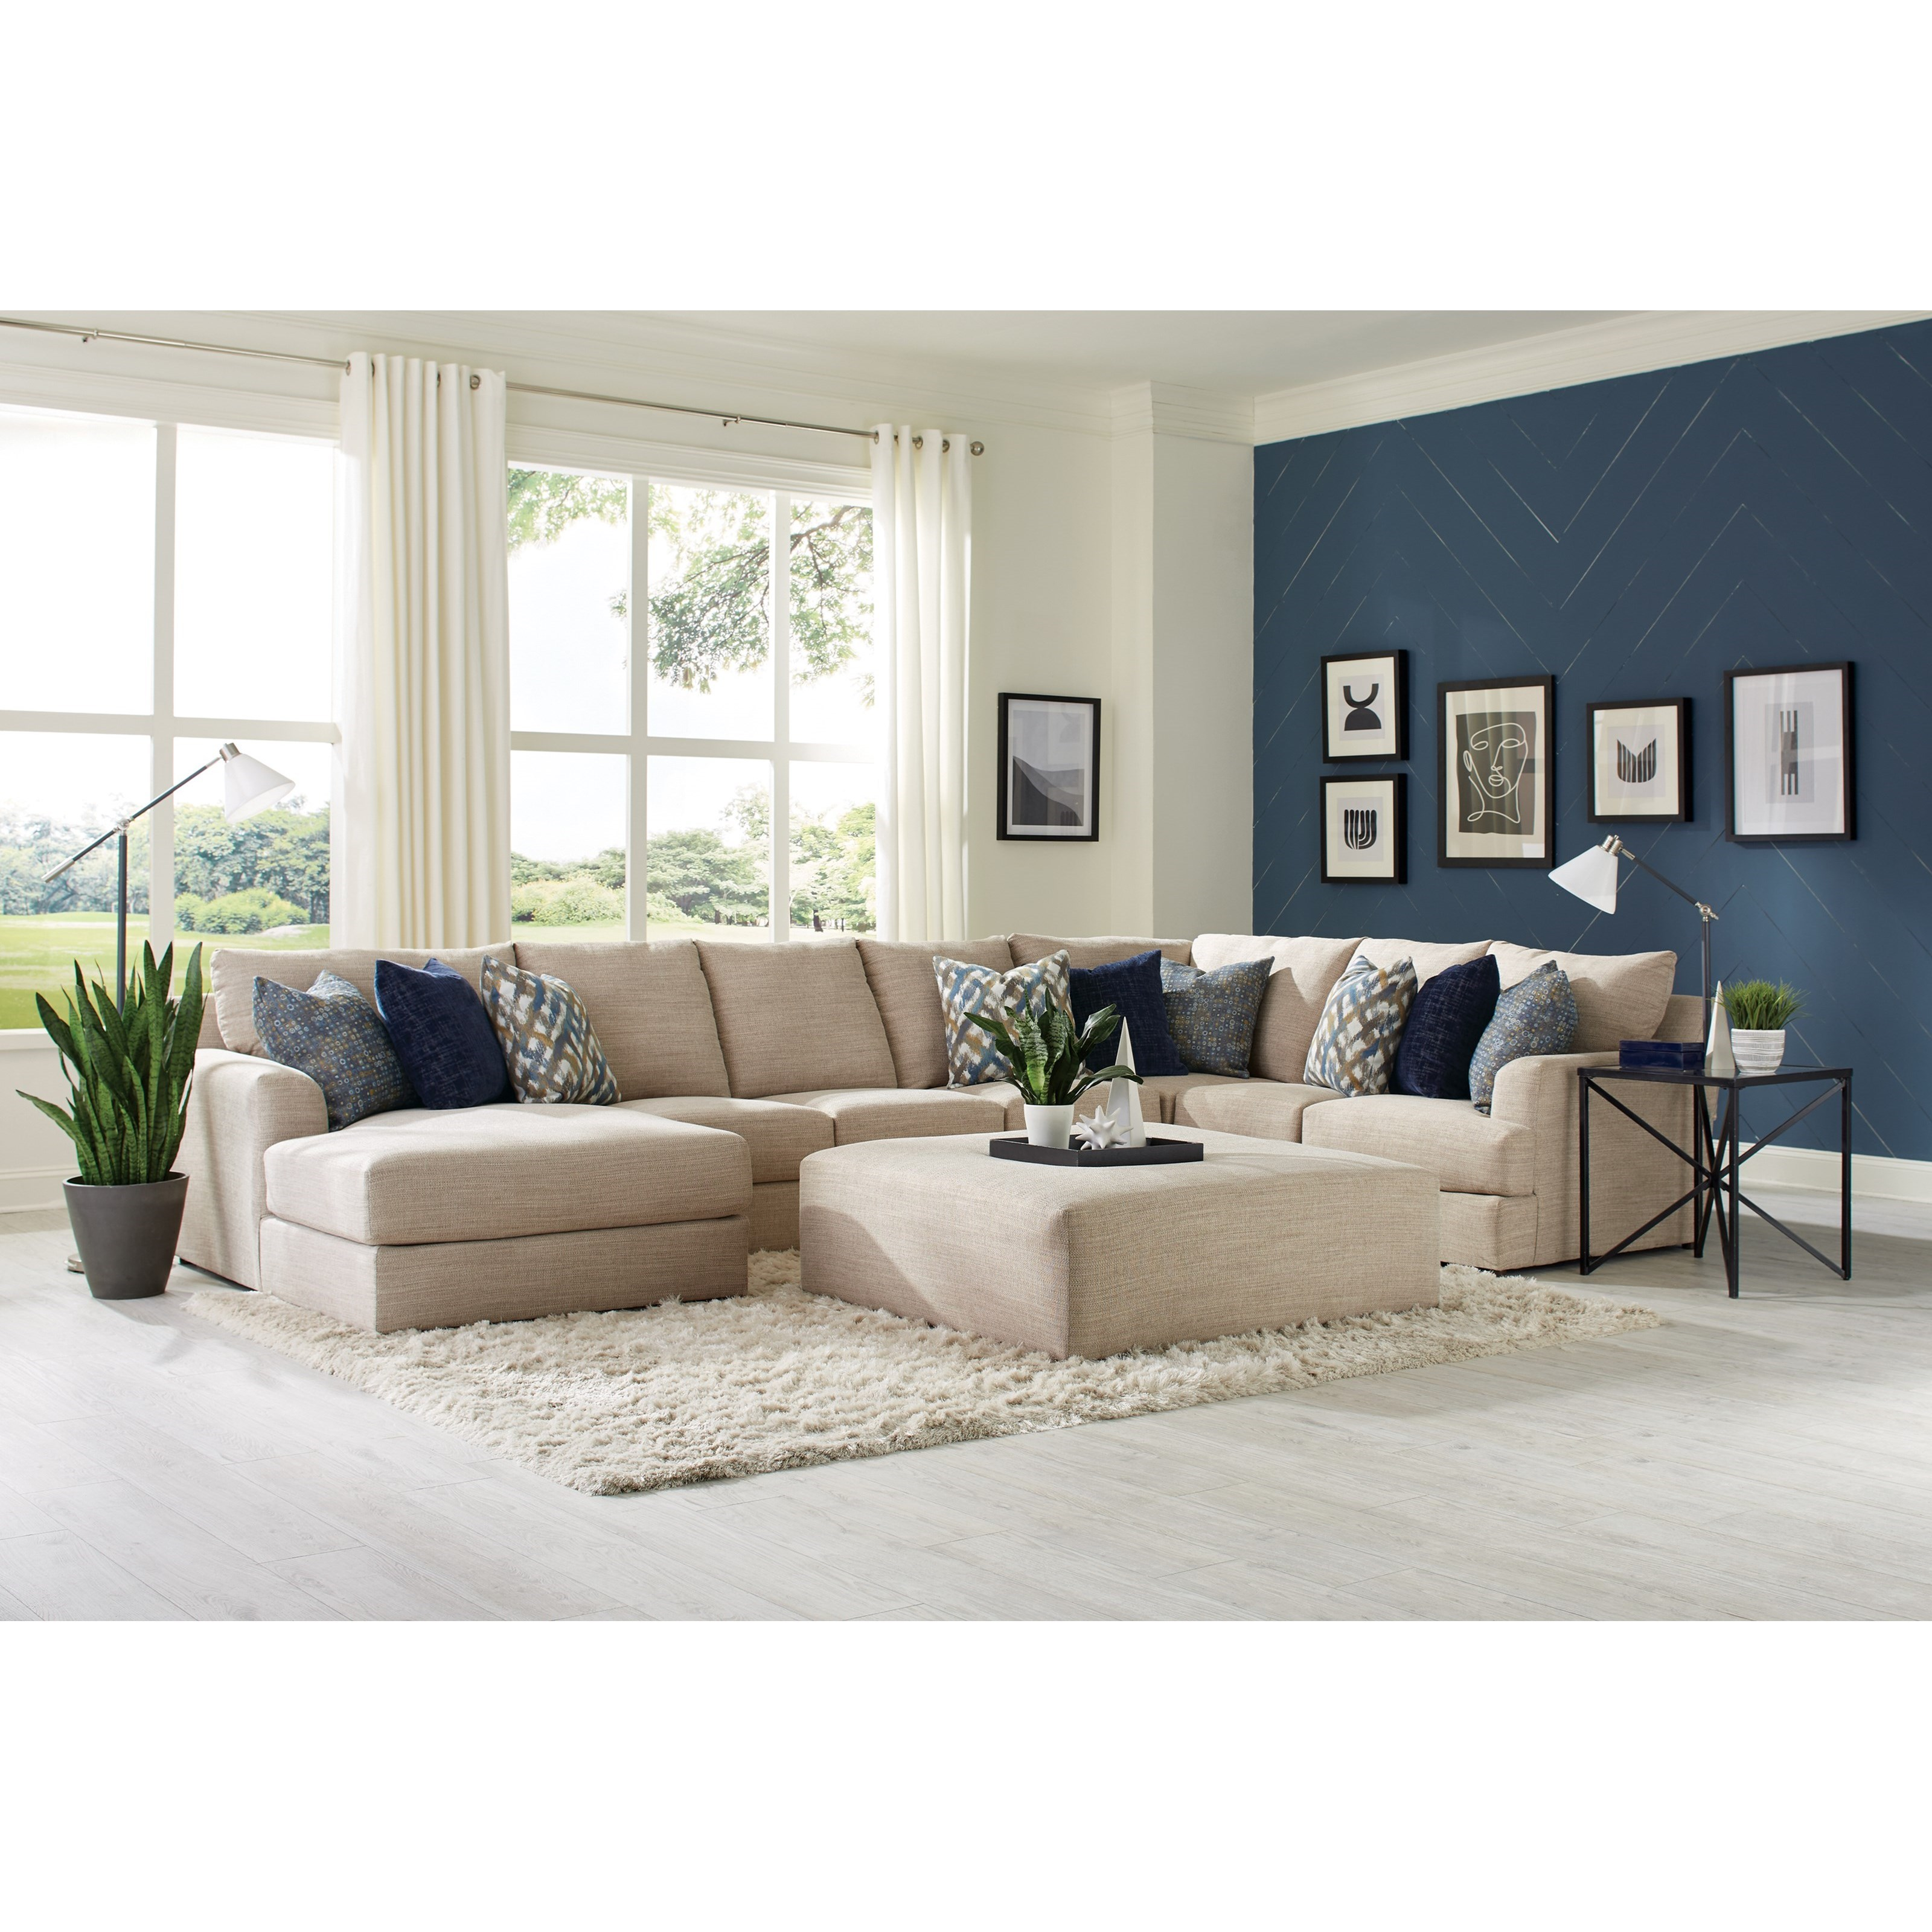 Laguna 3-Piece Sectional with LAF Chaise by Jackson Furniture at Z & R Furniture